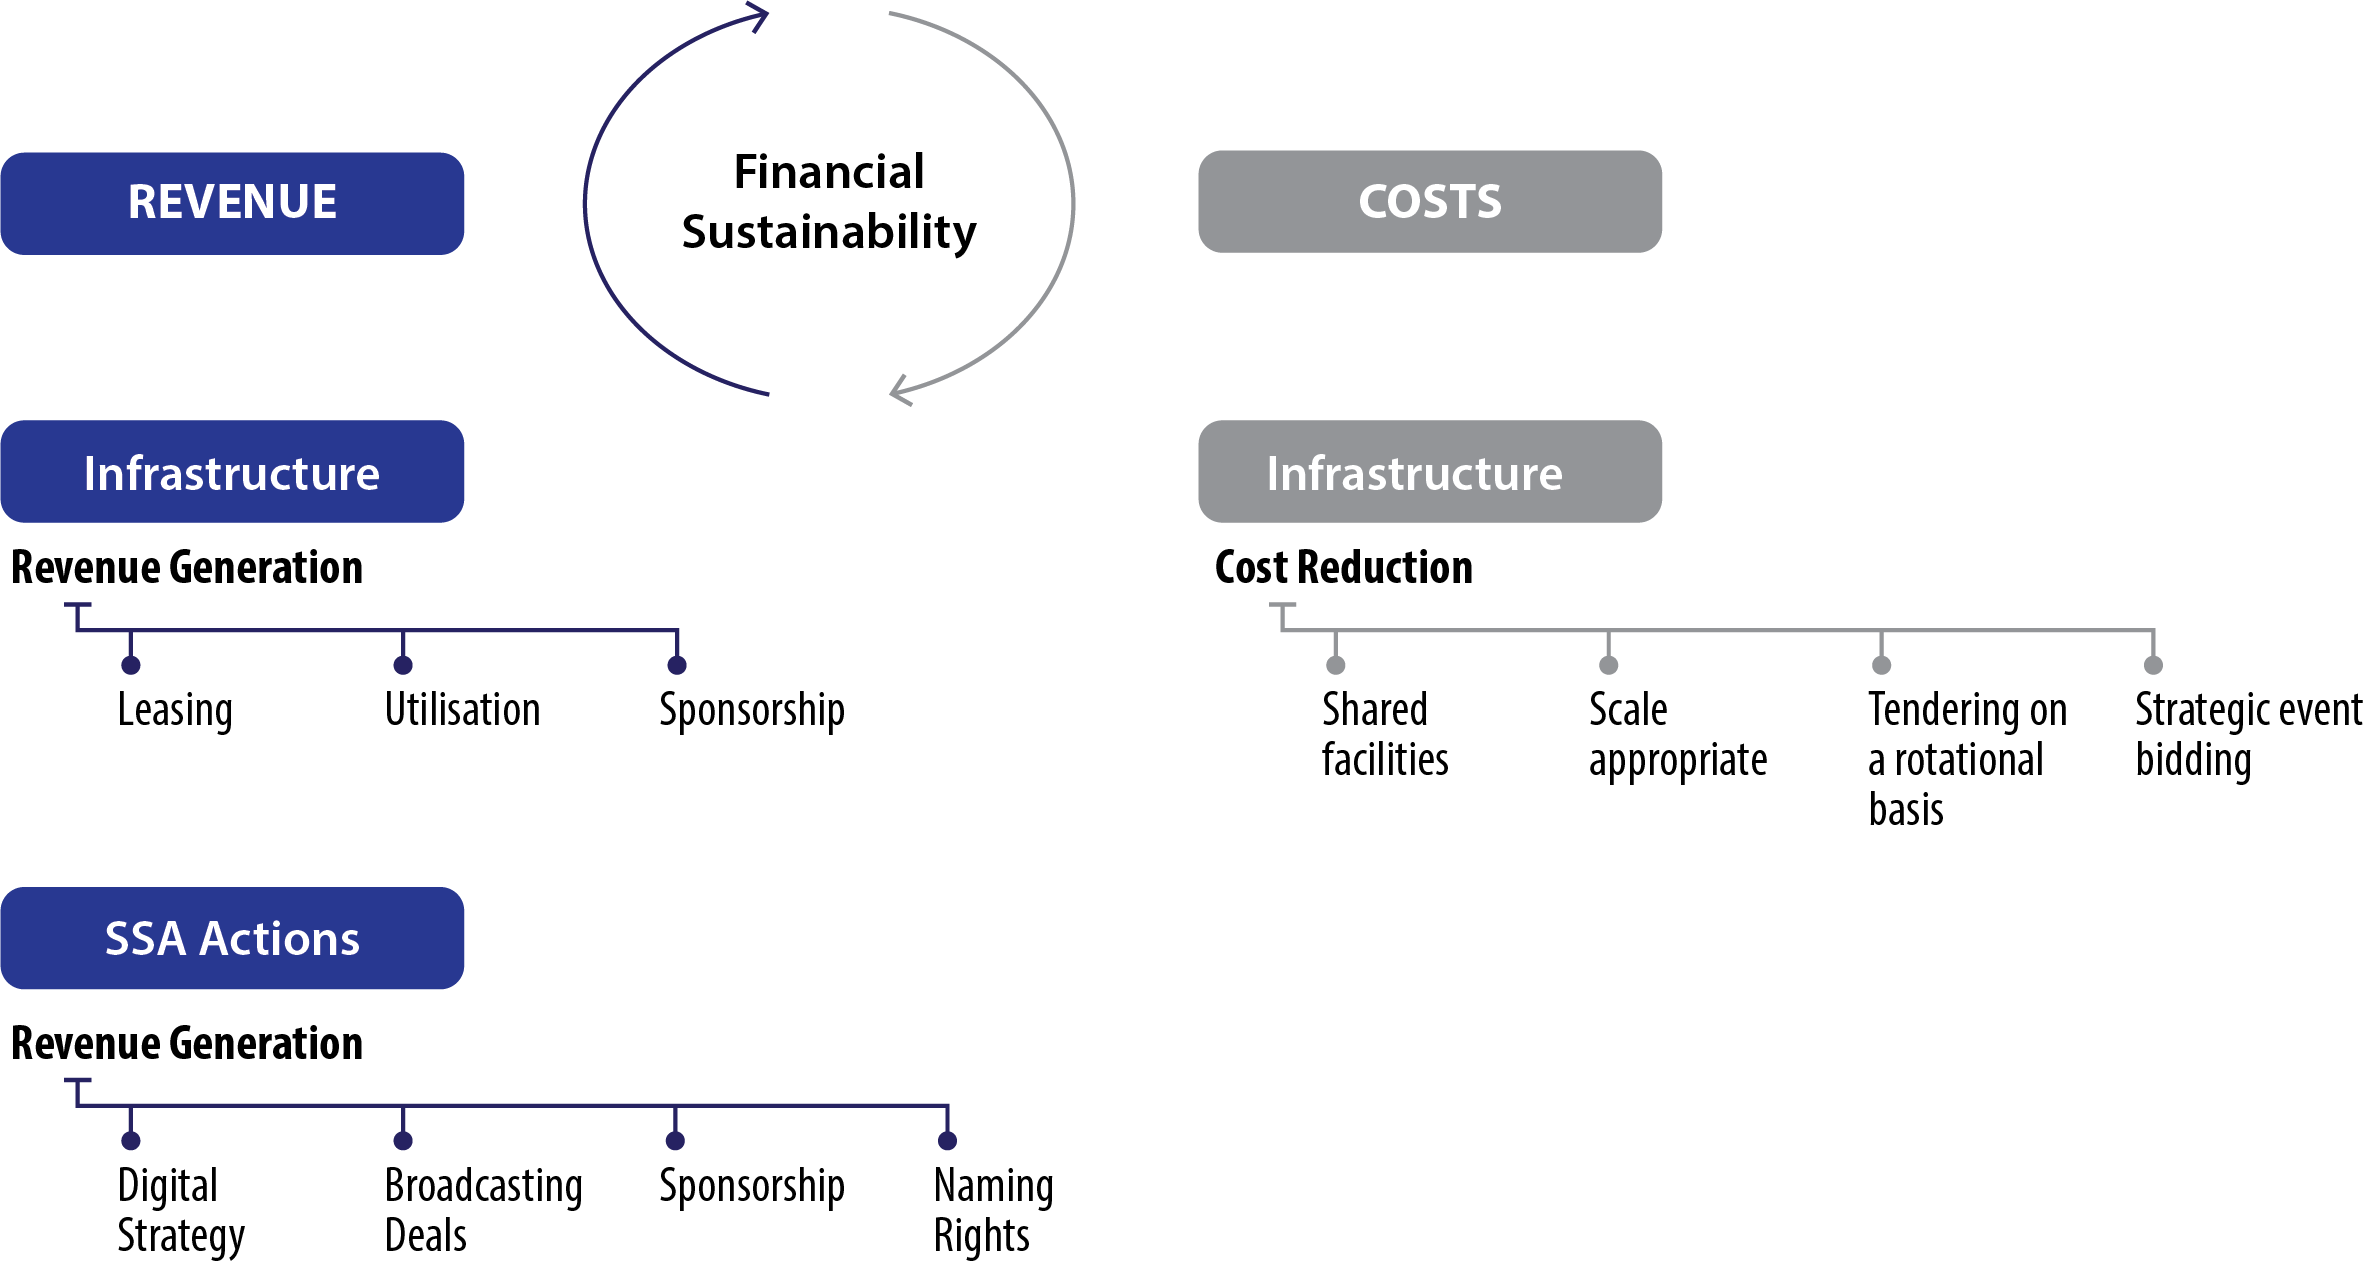 Figure 13. Financial Sustainability